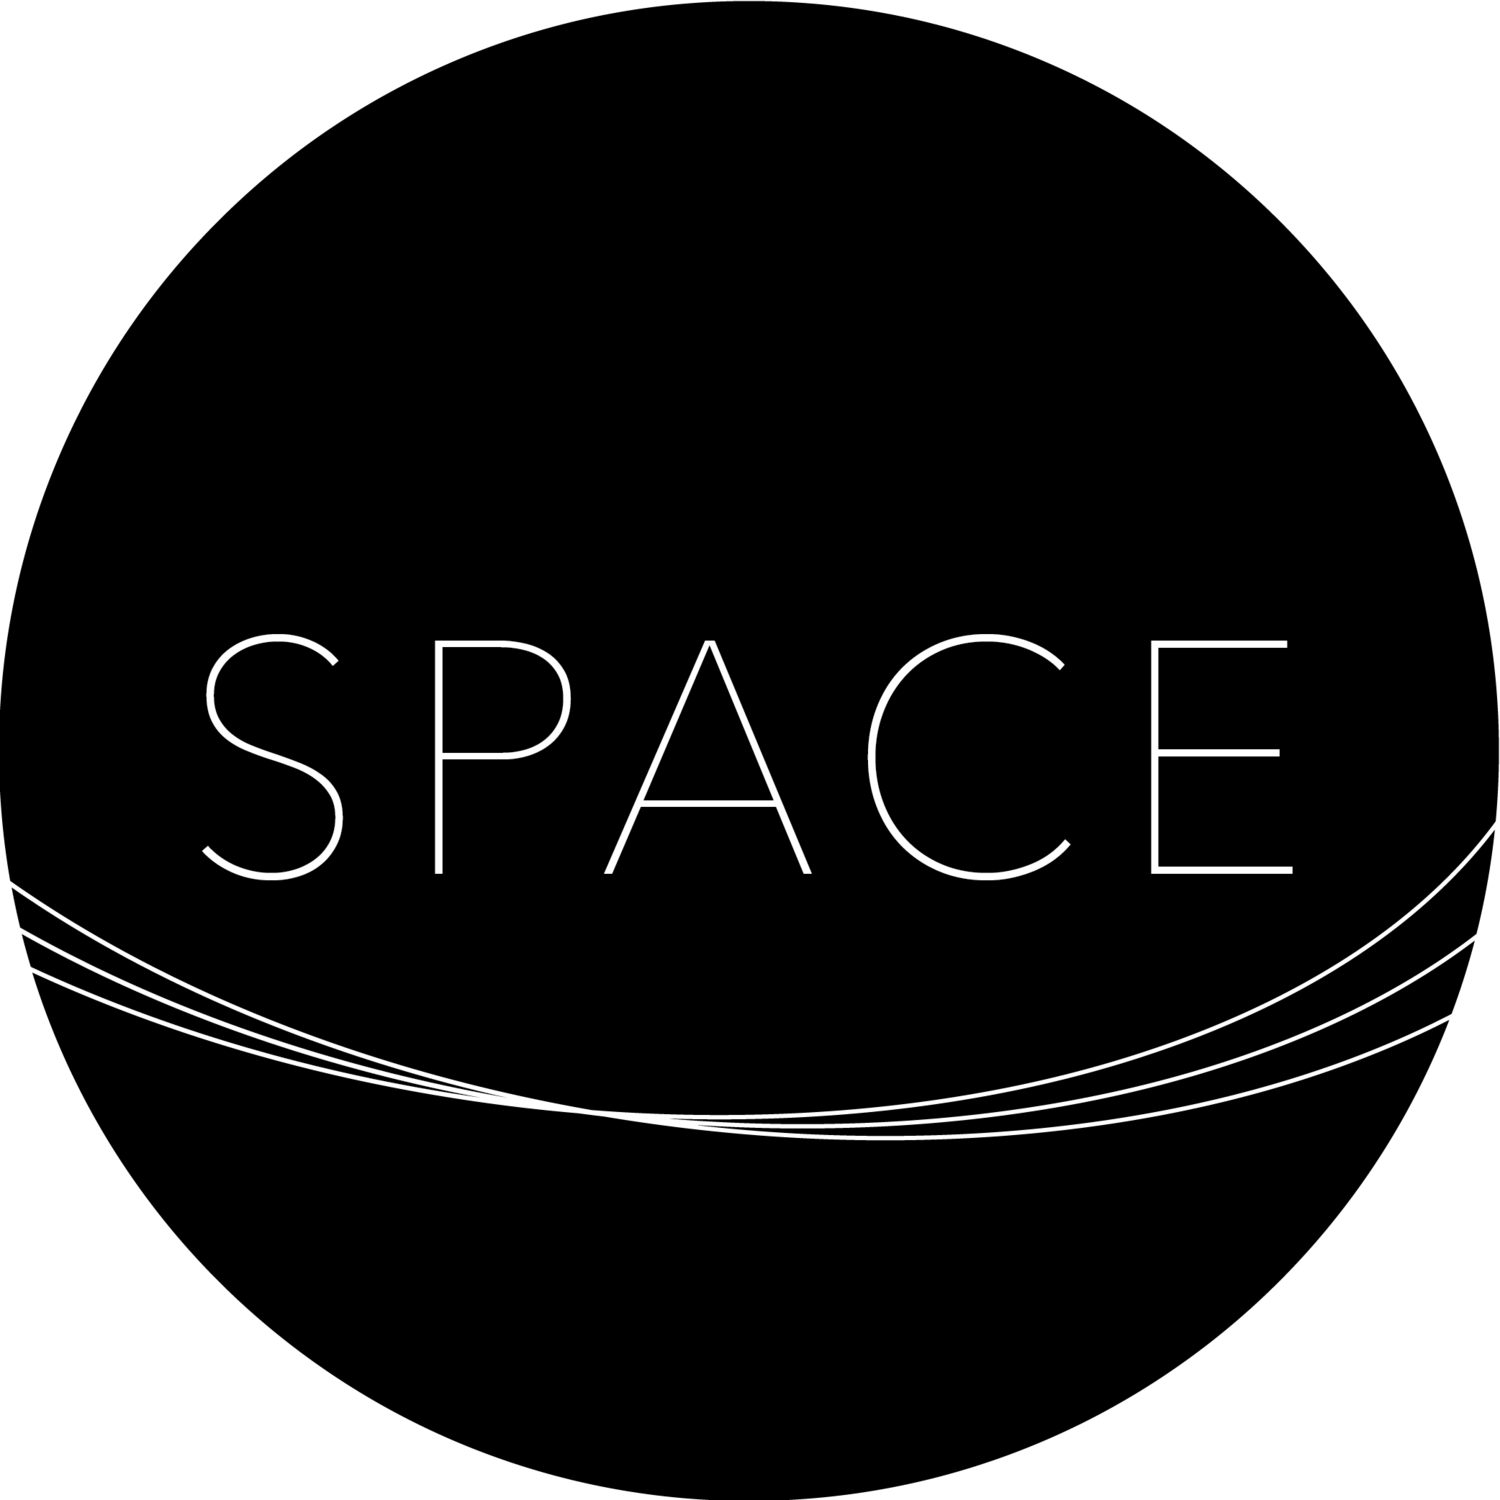 Space, Inc.